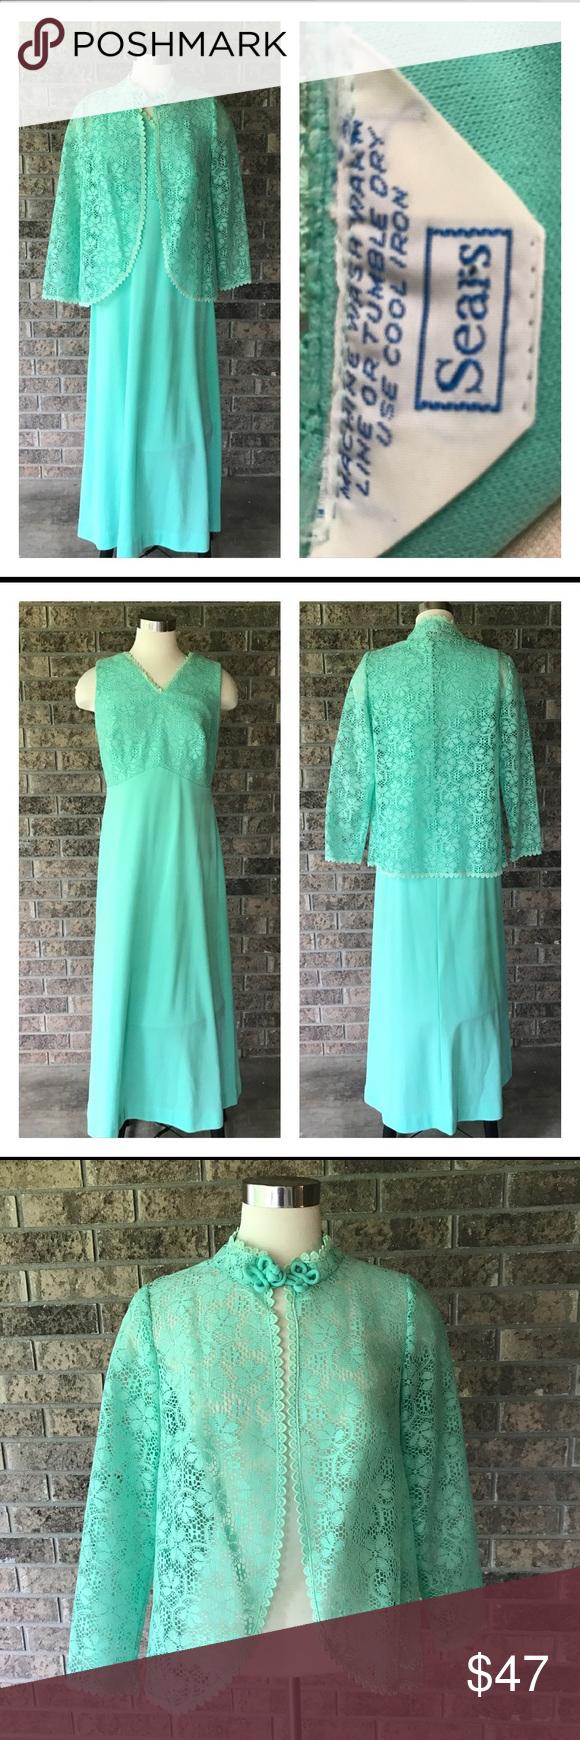 Green dress with lace overlay  Vintage Sea Green Maxi Dress and Lace Jacket  Green Lace and Overlays